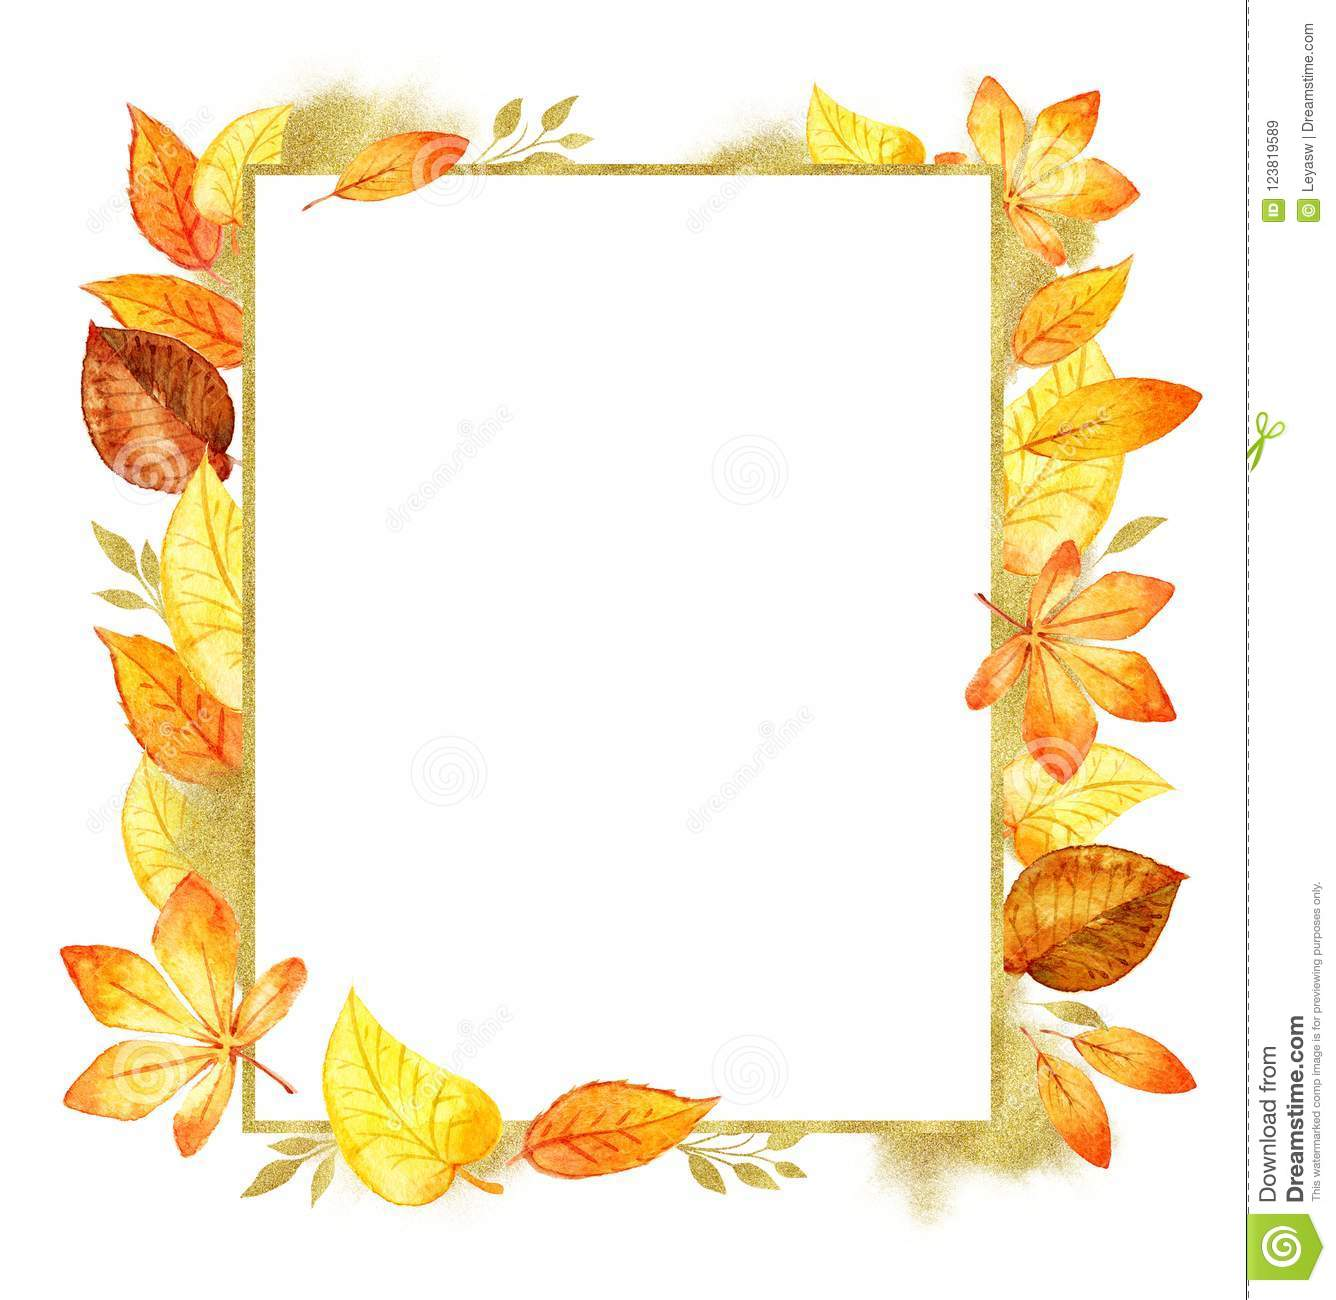 Autumn leaves fall frame template watercolor isolated orange leaf autumn leaves fall frame template watercolor illustration isolated orange leaf border maxwellsz